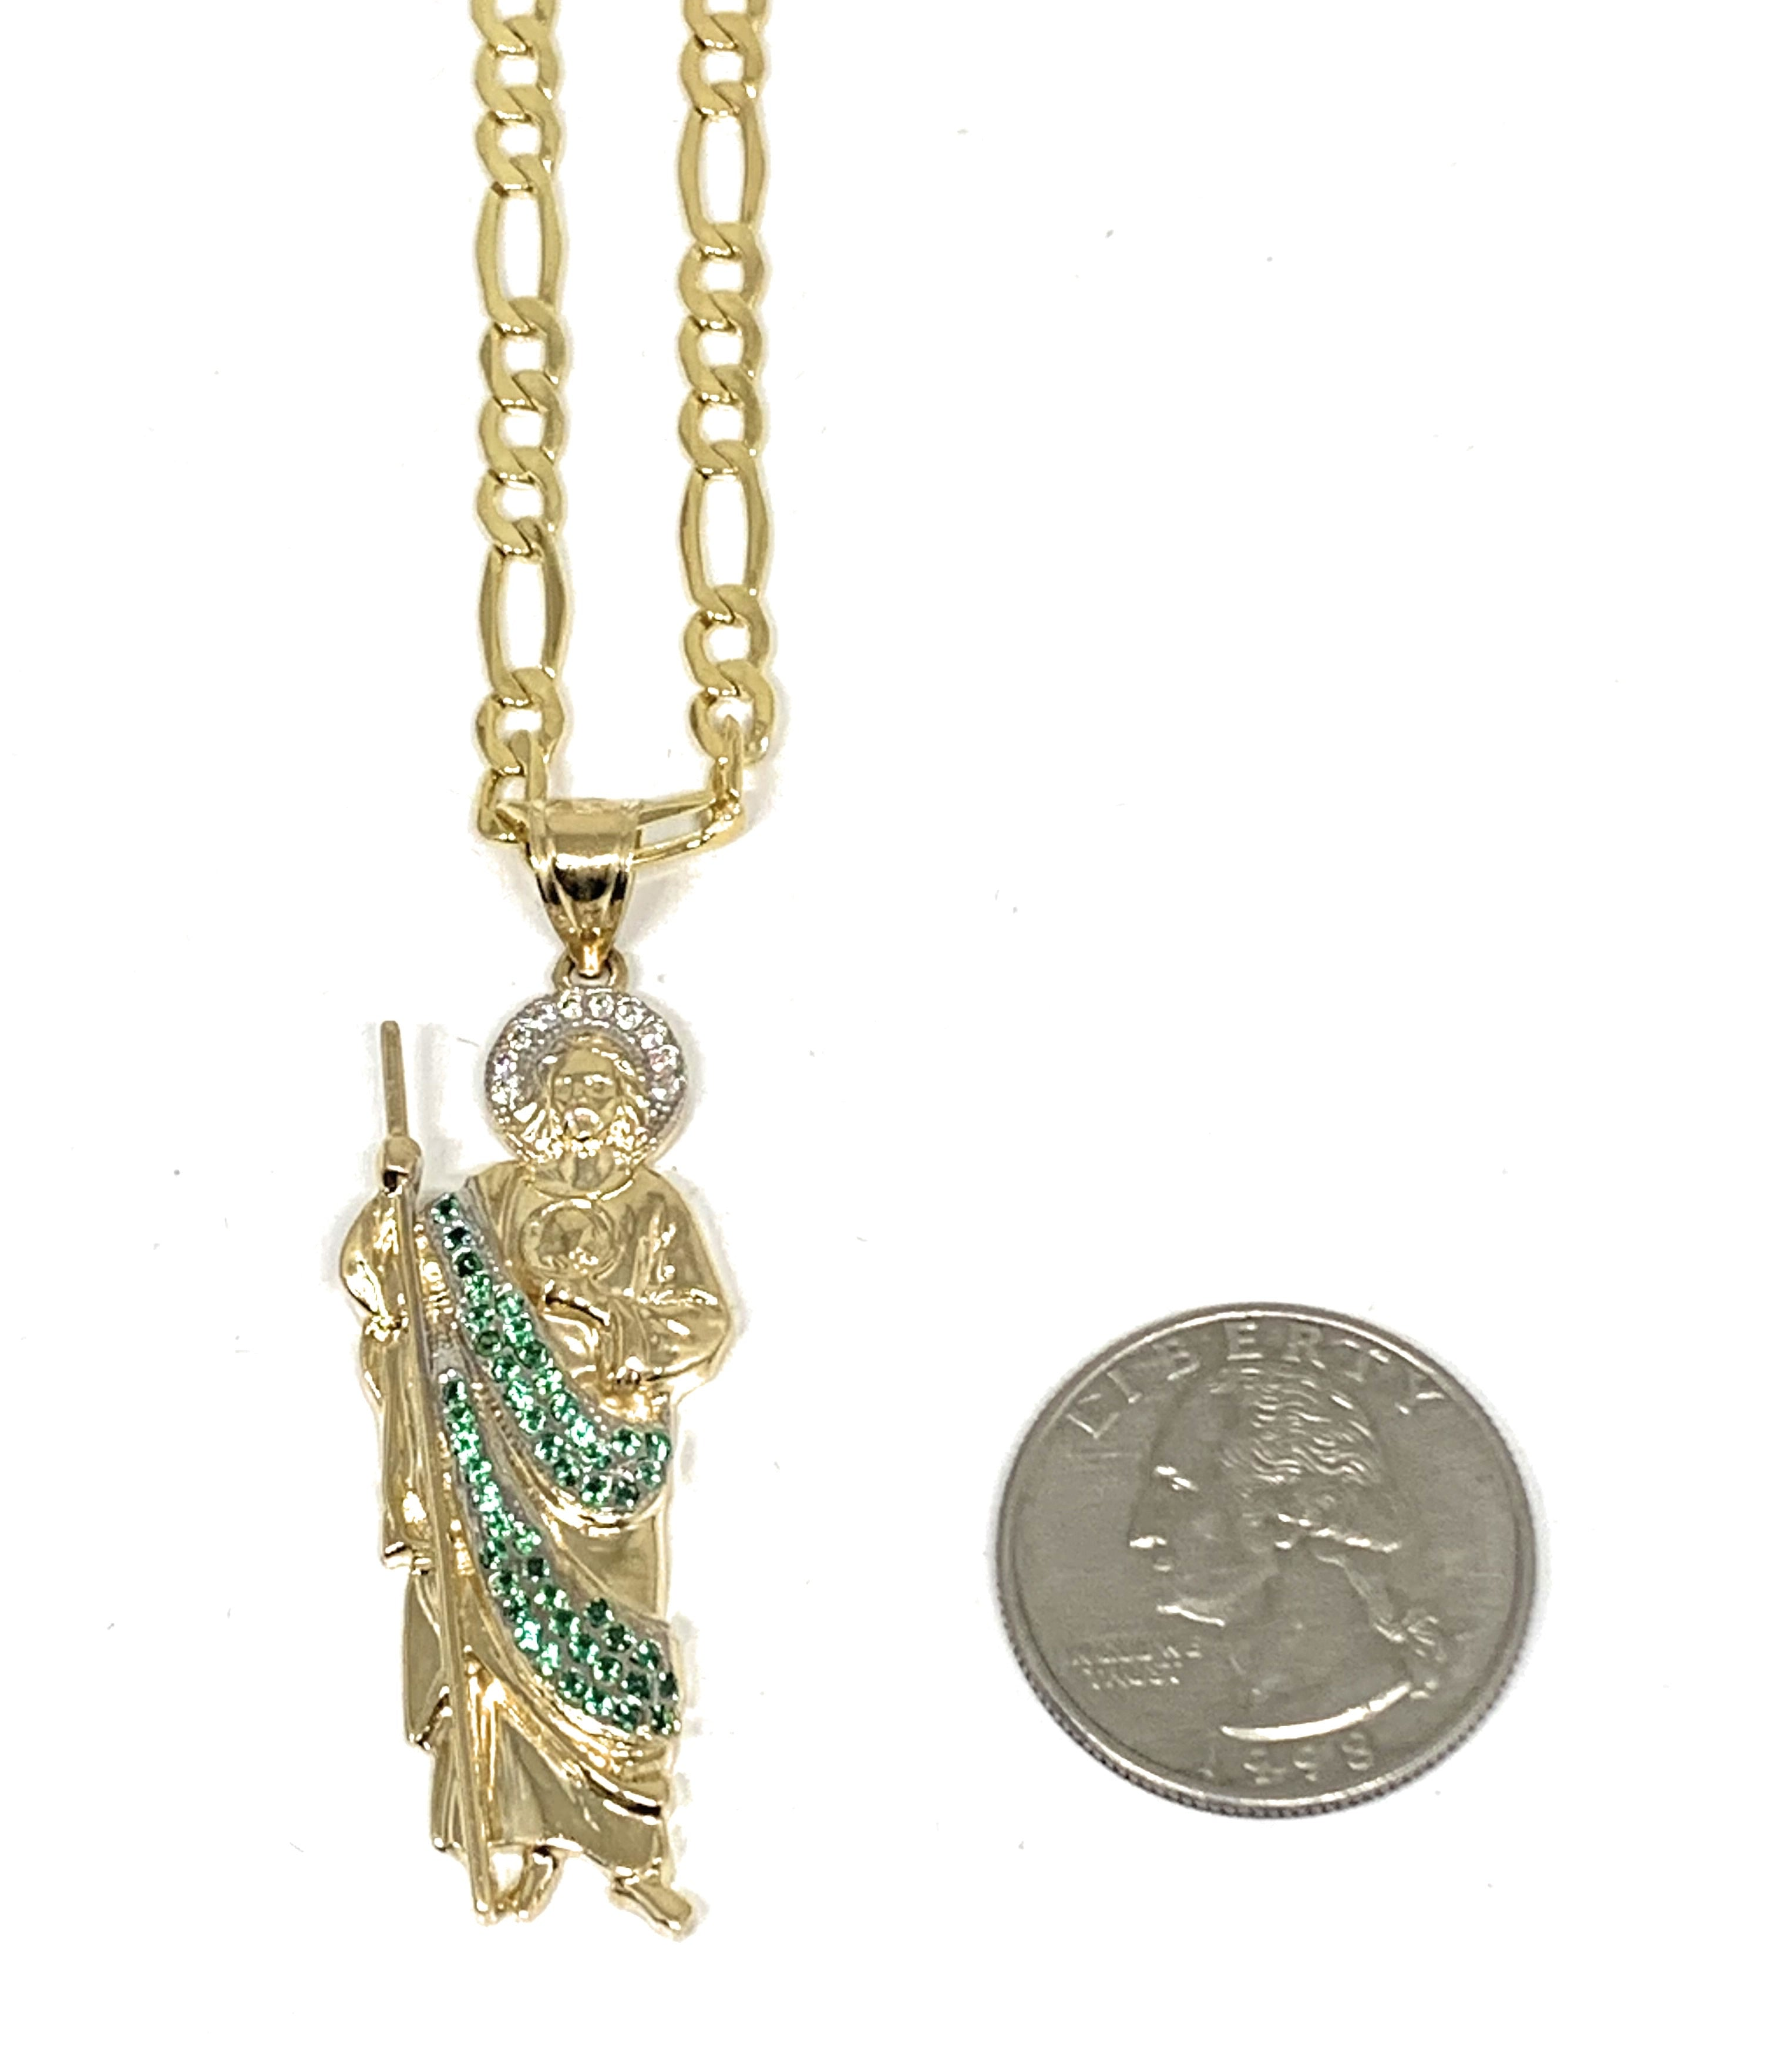 14k Solid Gold Yellow White & Green CZ Saan Judas Saaint Jude Pendant with Chain Optional